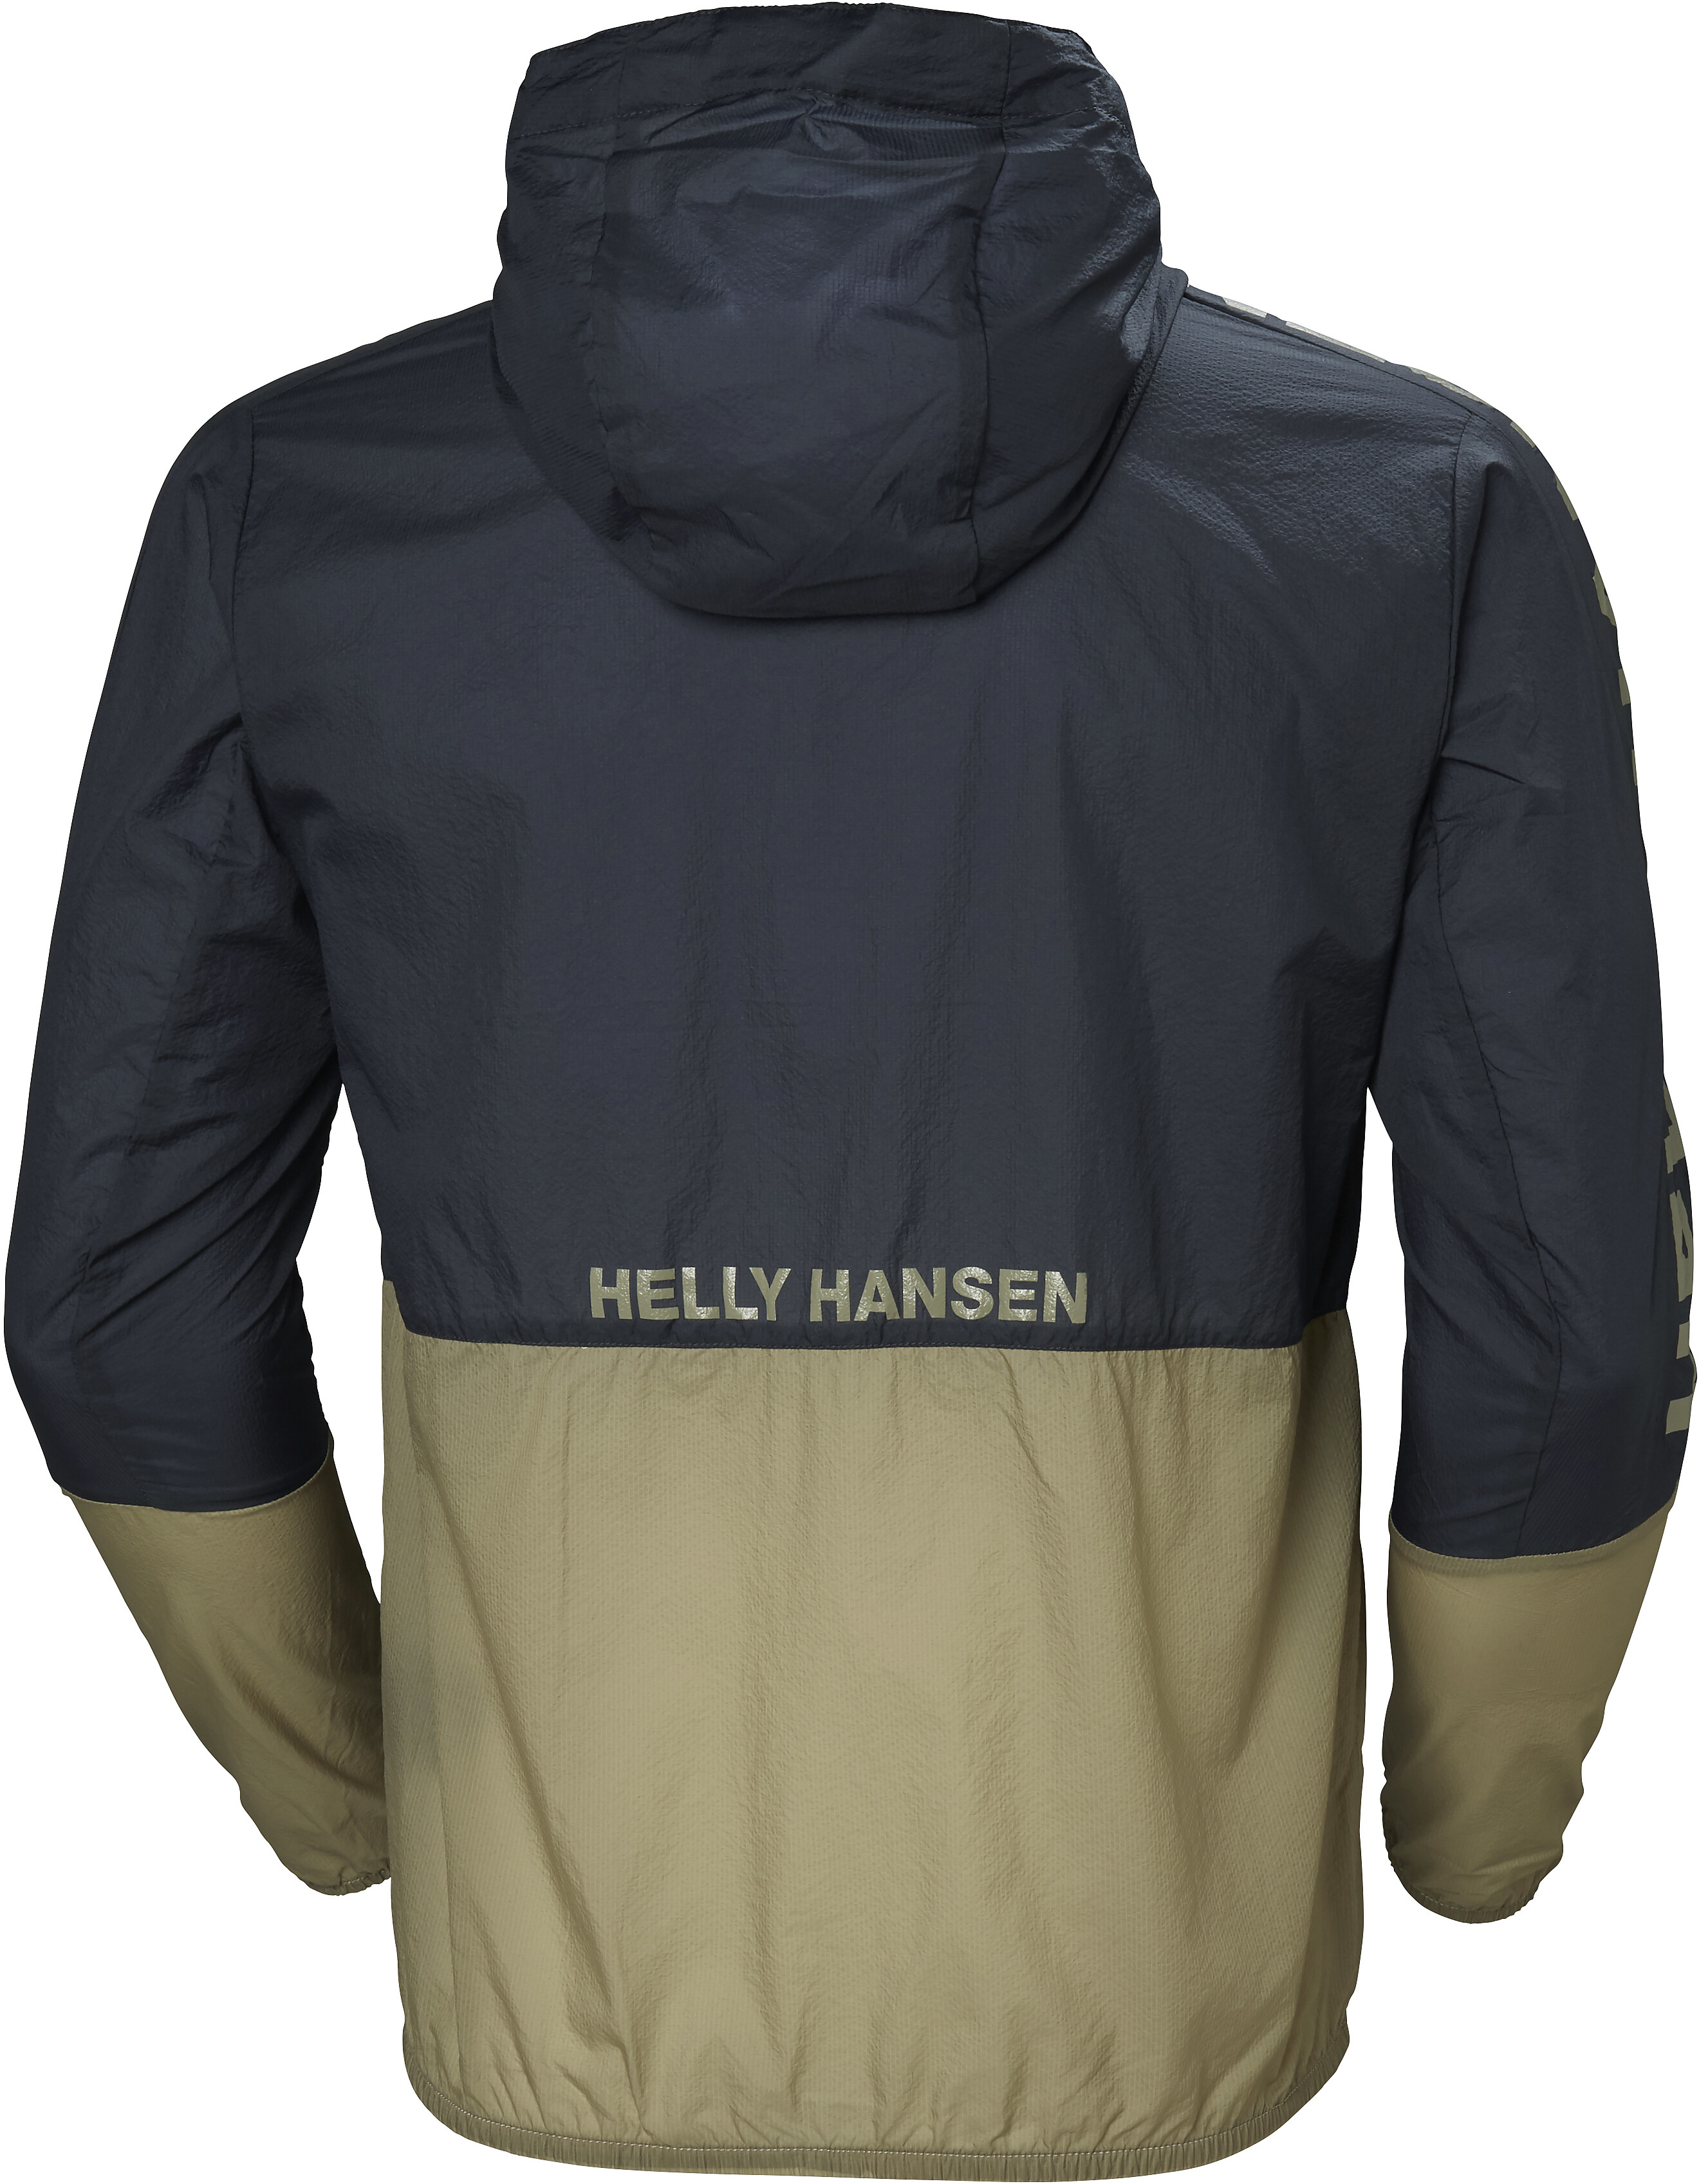 94c2957e Helly Hansen Active Windbreaker Jacket Herrer, graphite blue | Find ...